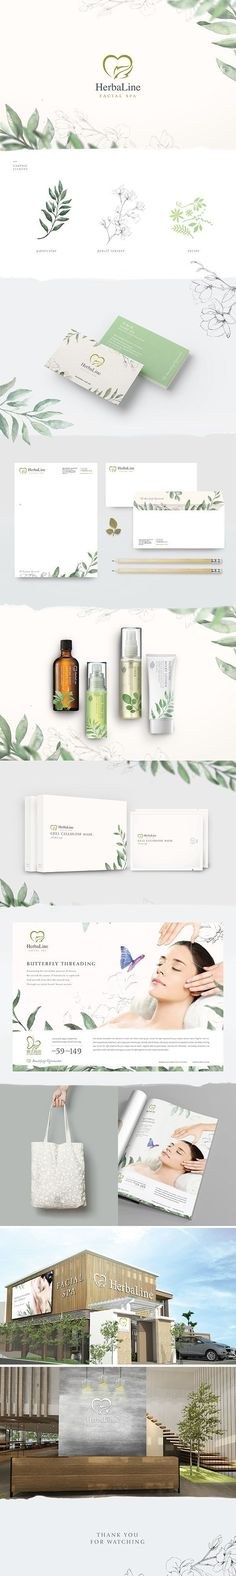 Herbal #branding #identity - Great use of combining different textures while keeping the overall design simplistic but engaging.